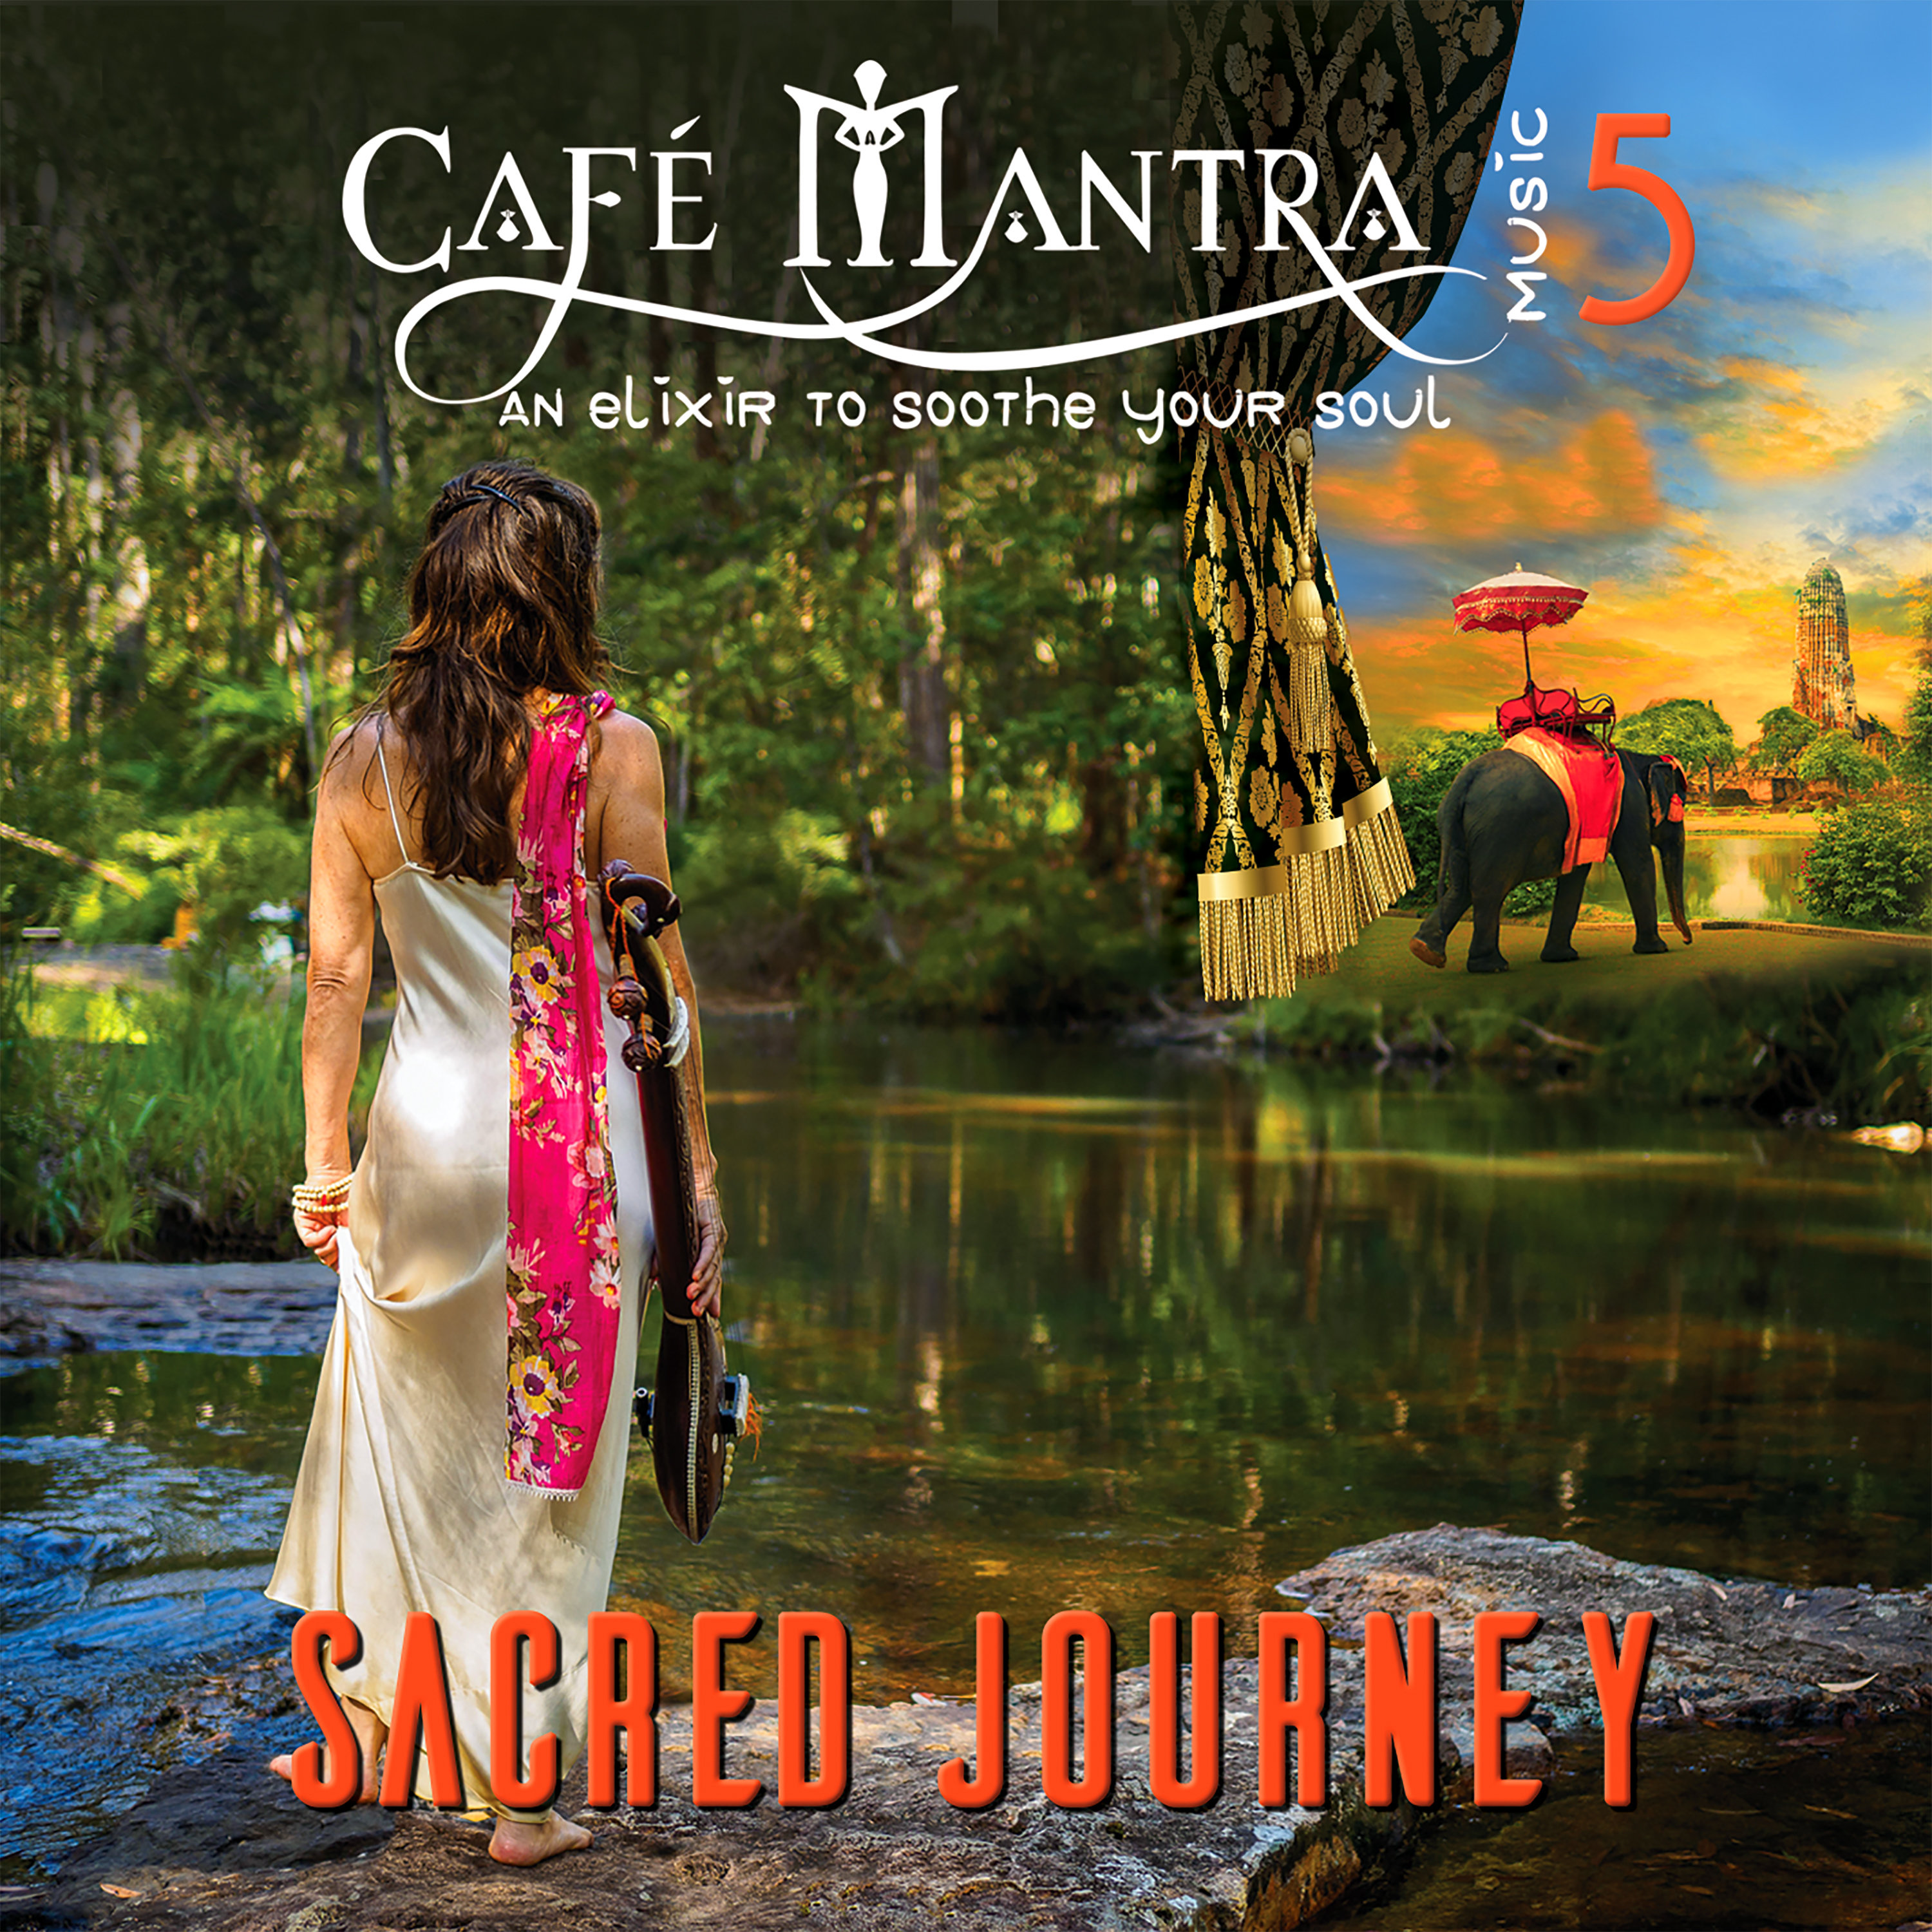 CD Cafe Mantra Music5 Sacred Journey 00004